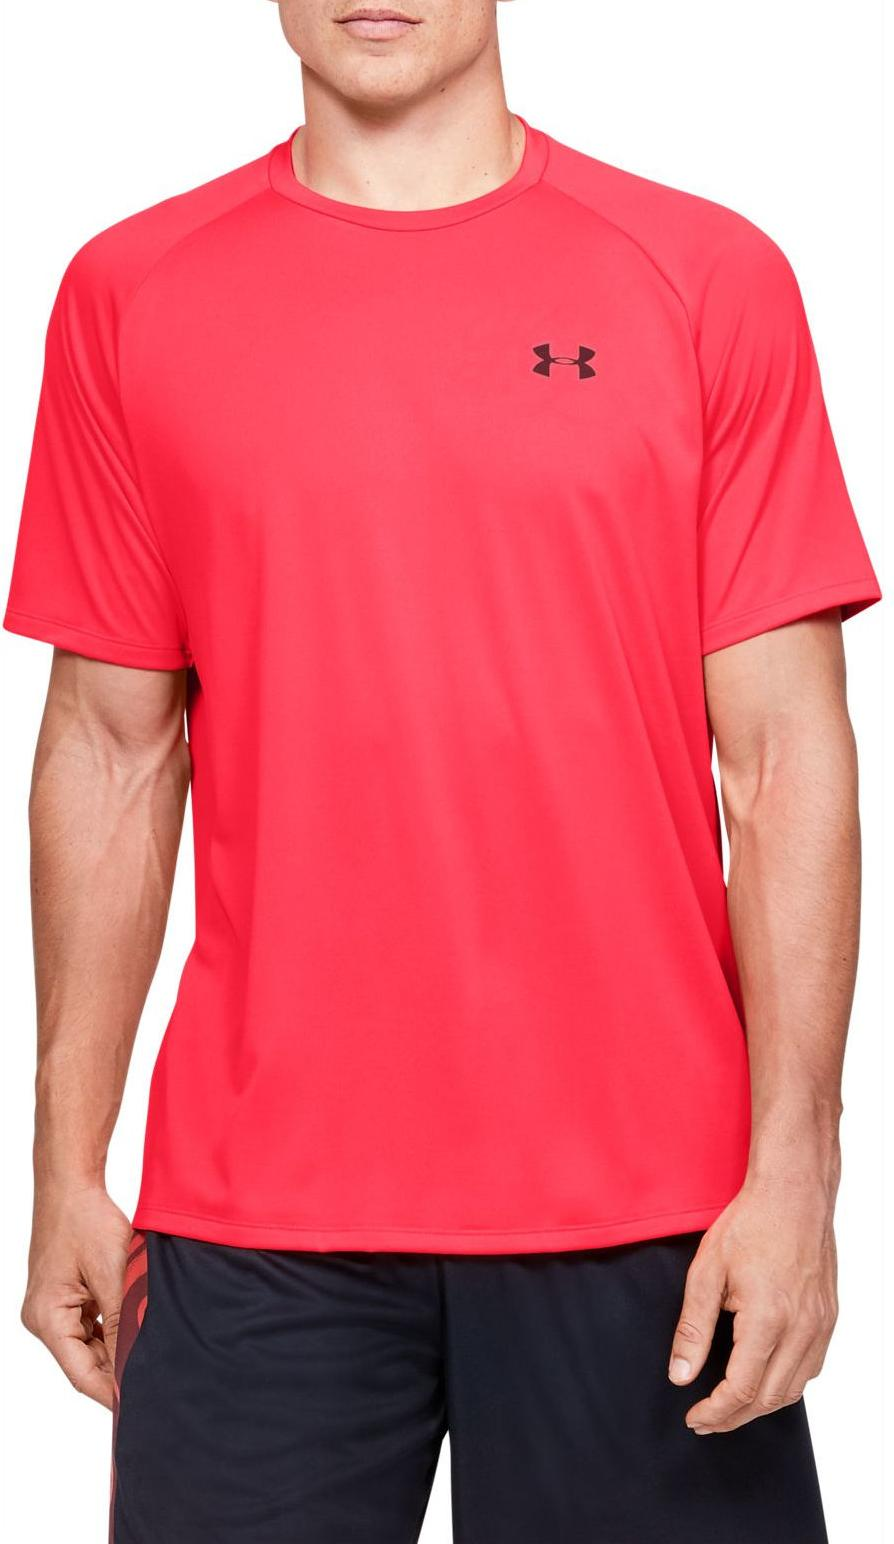 Tee-shirt Under Armour UA Tech 2.0 SS Tee